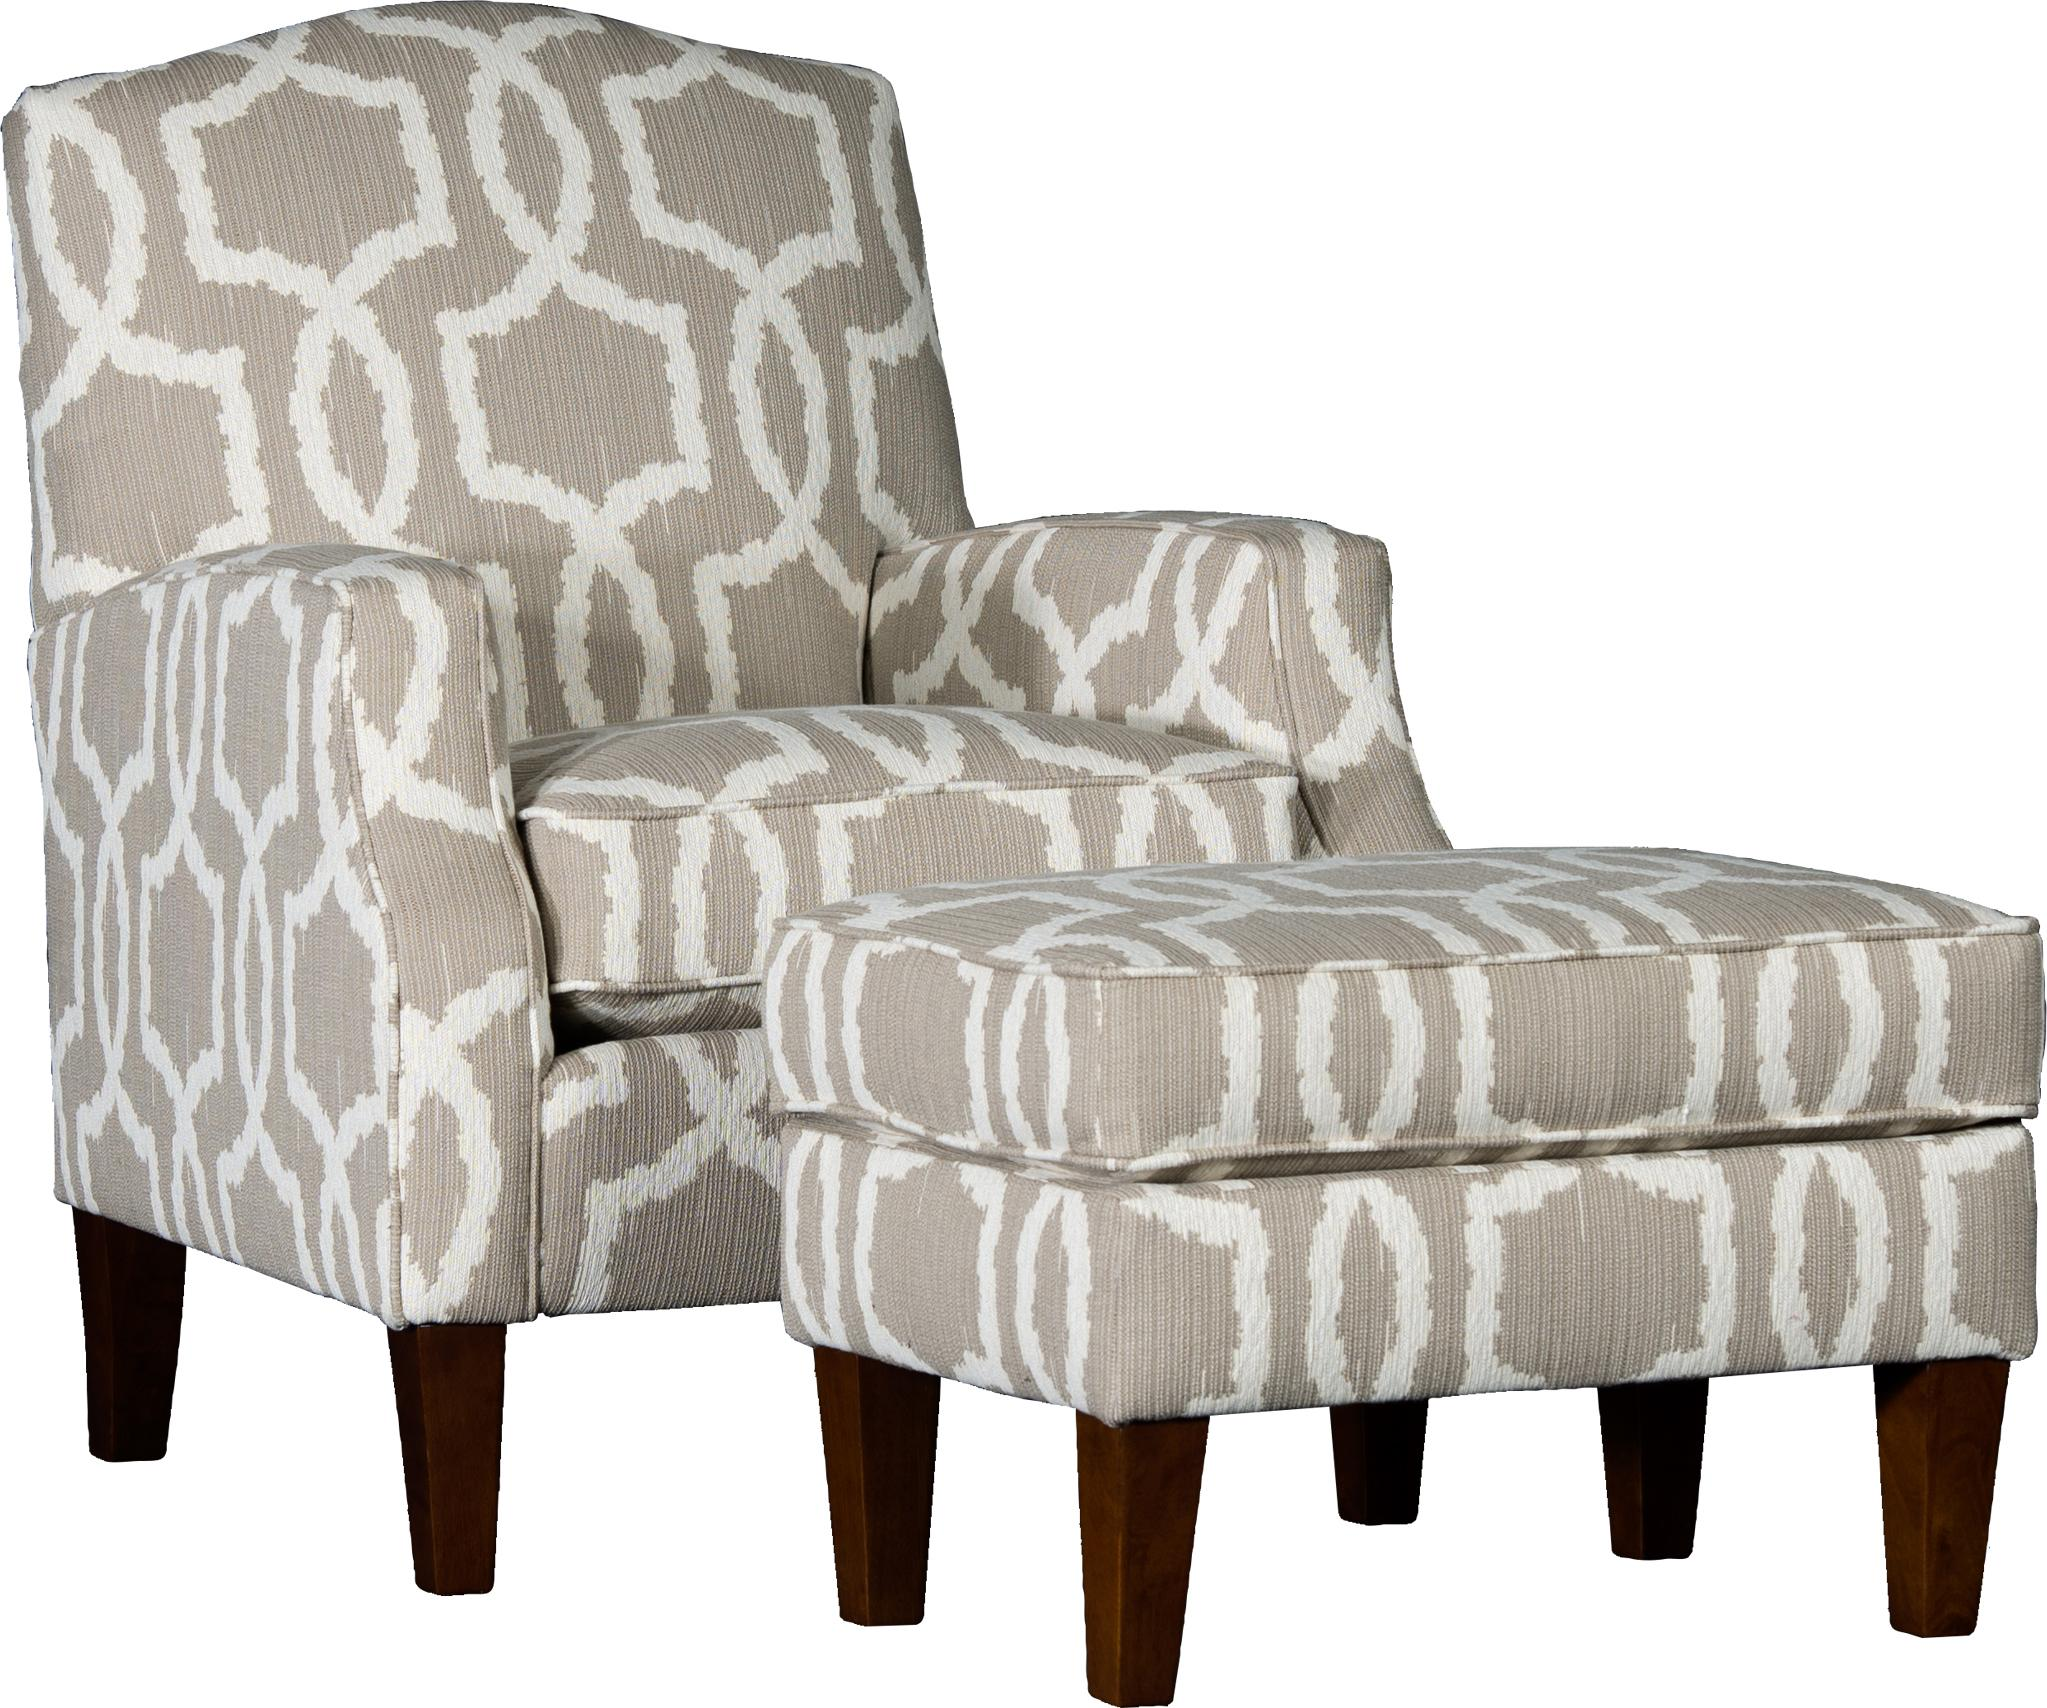 3725 Chair & Ottoman Set by Mayo at Pedigo Furniture